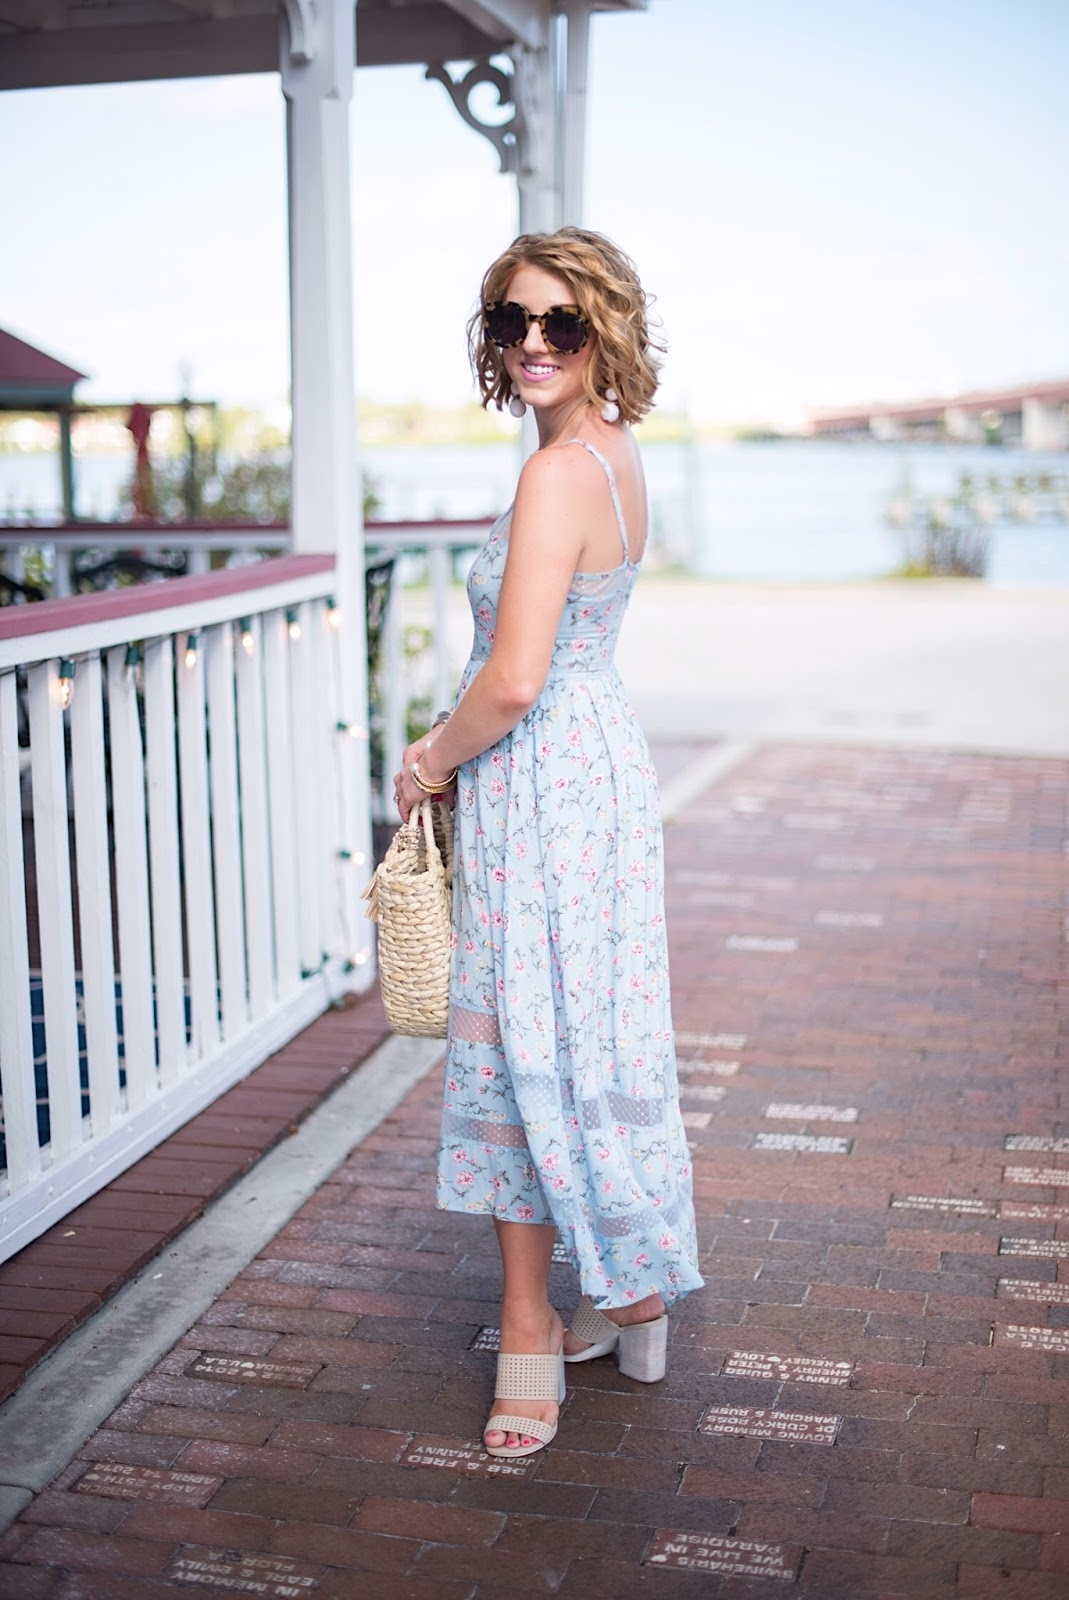 Under $70 High Low Dress - Click through to see more on Something Delightful Blog!